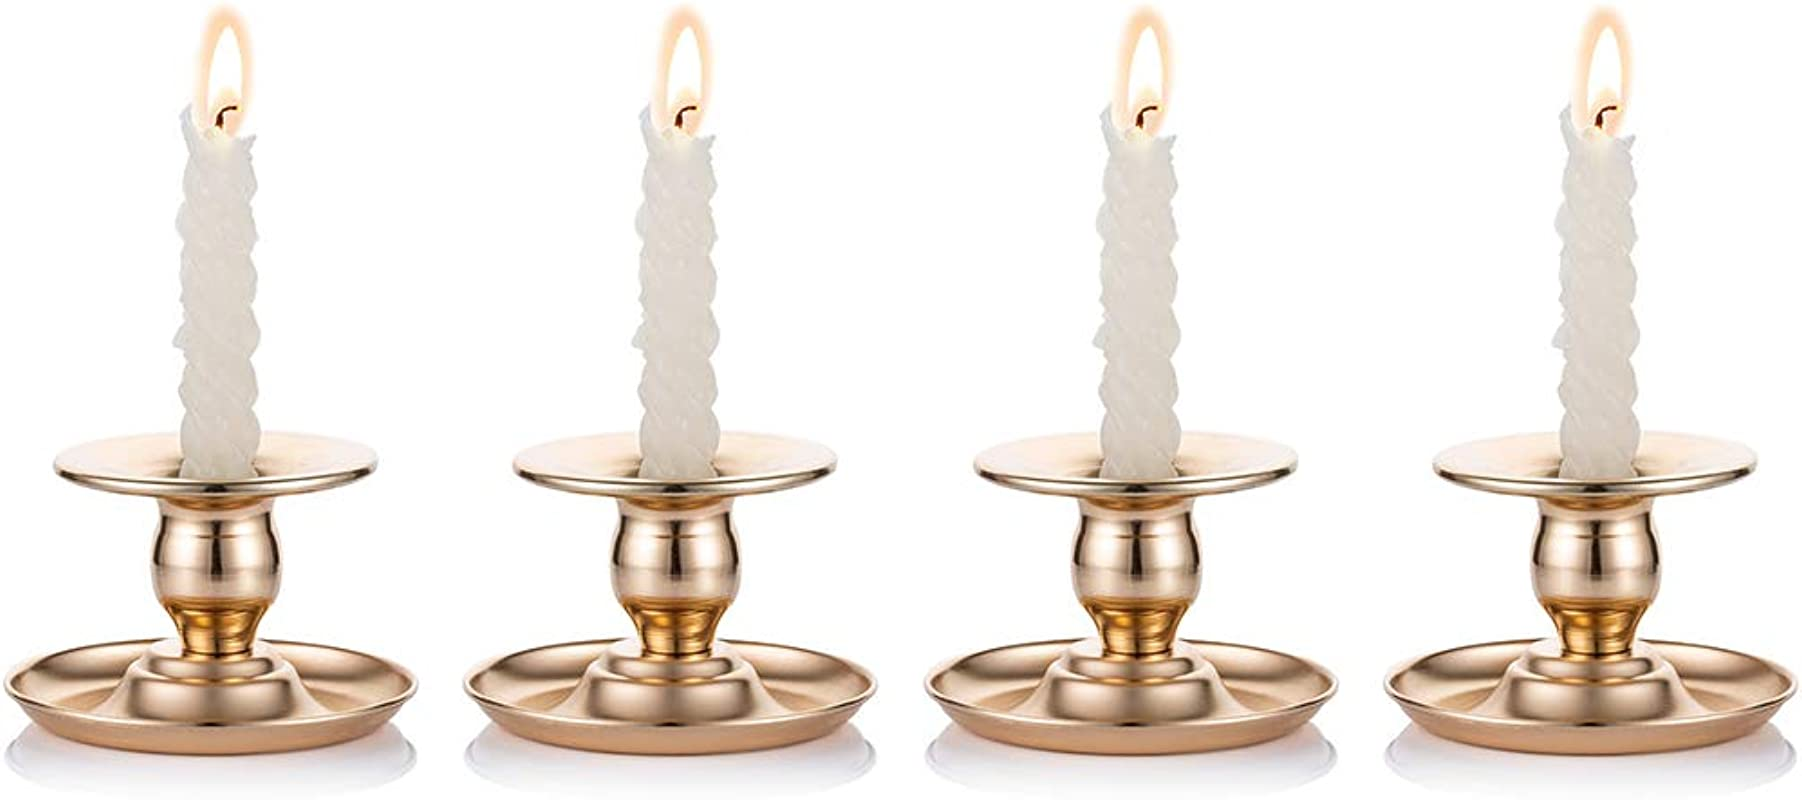 Nuptio 4 Pcs Metal Taper Candle Holders Candlestick Holder Dining Room Centerpieces 2 5 Inches High Ideal Gift For Weddings Party Favor Reki Meditation